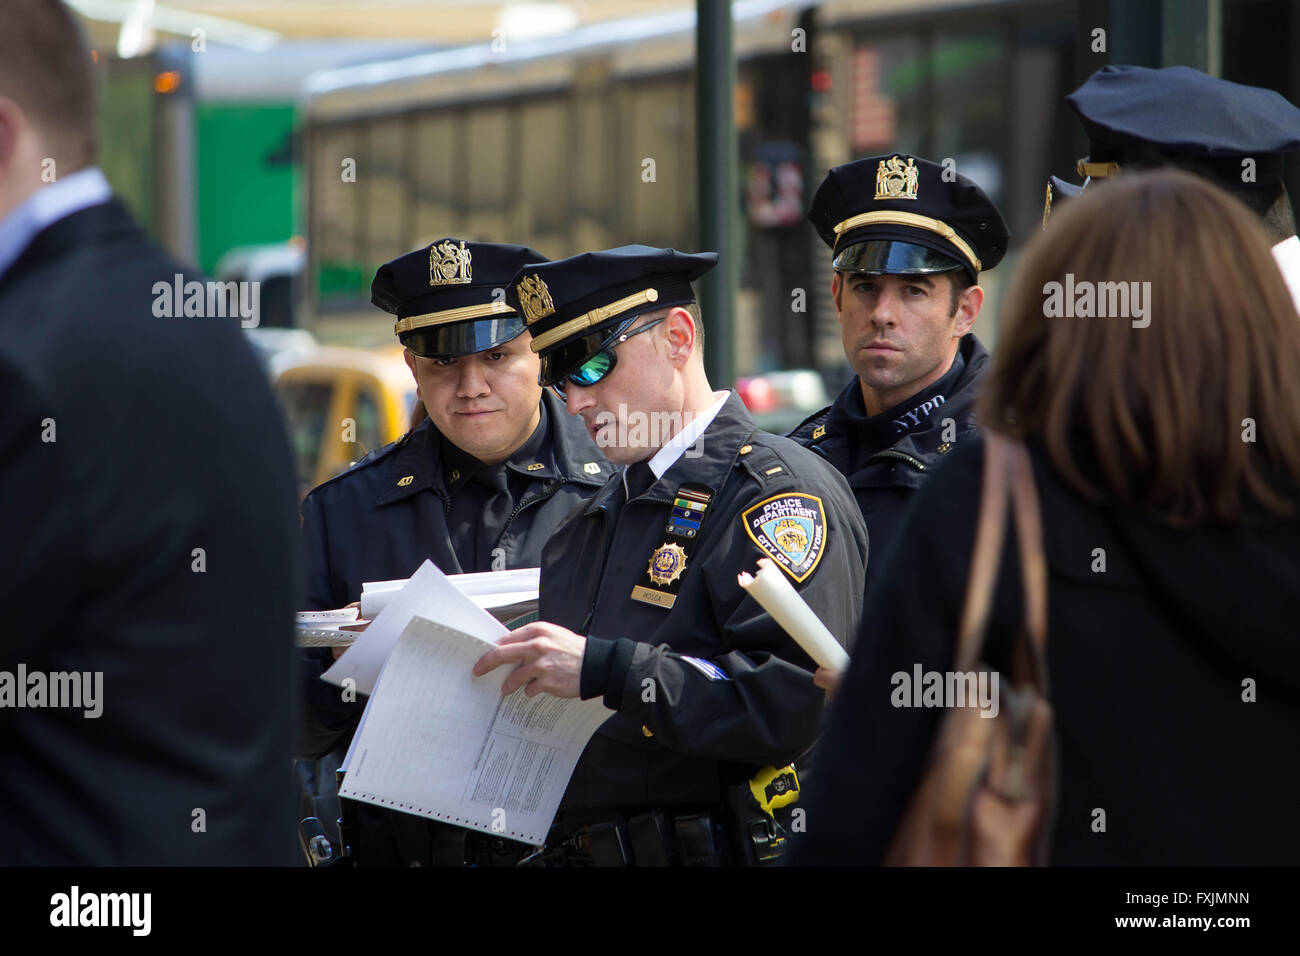 Mobilizing- An NYPD police command unit mobilises for action before anti-Trump demonstration during 2016 US elections - Stock Image